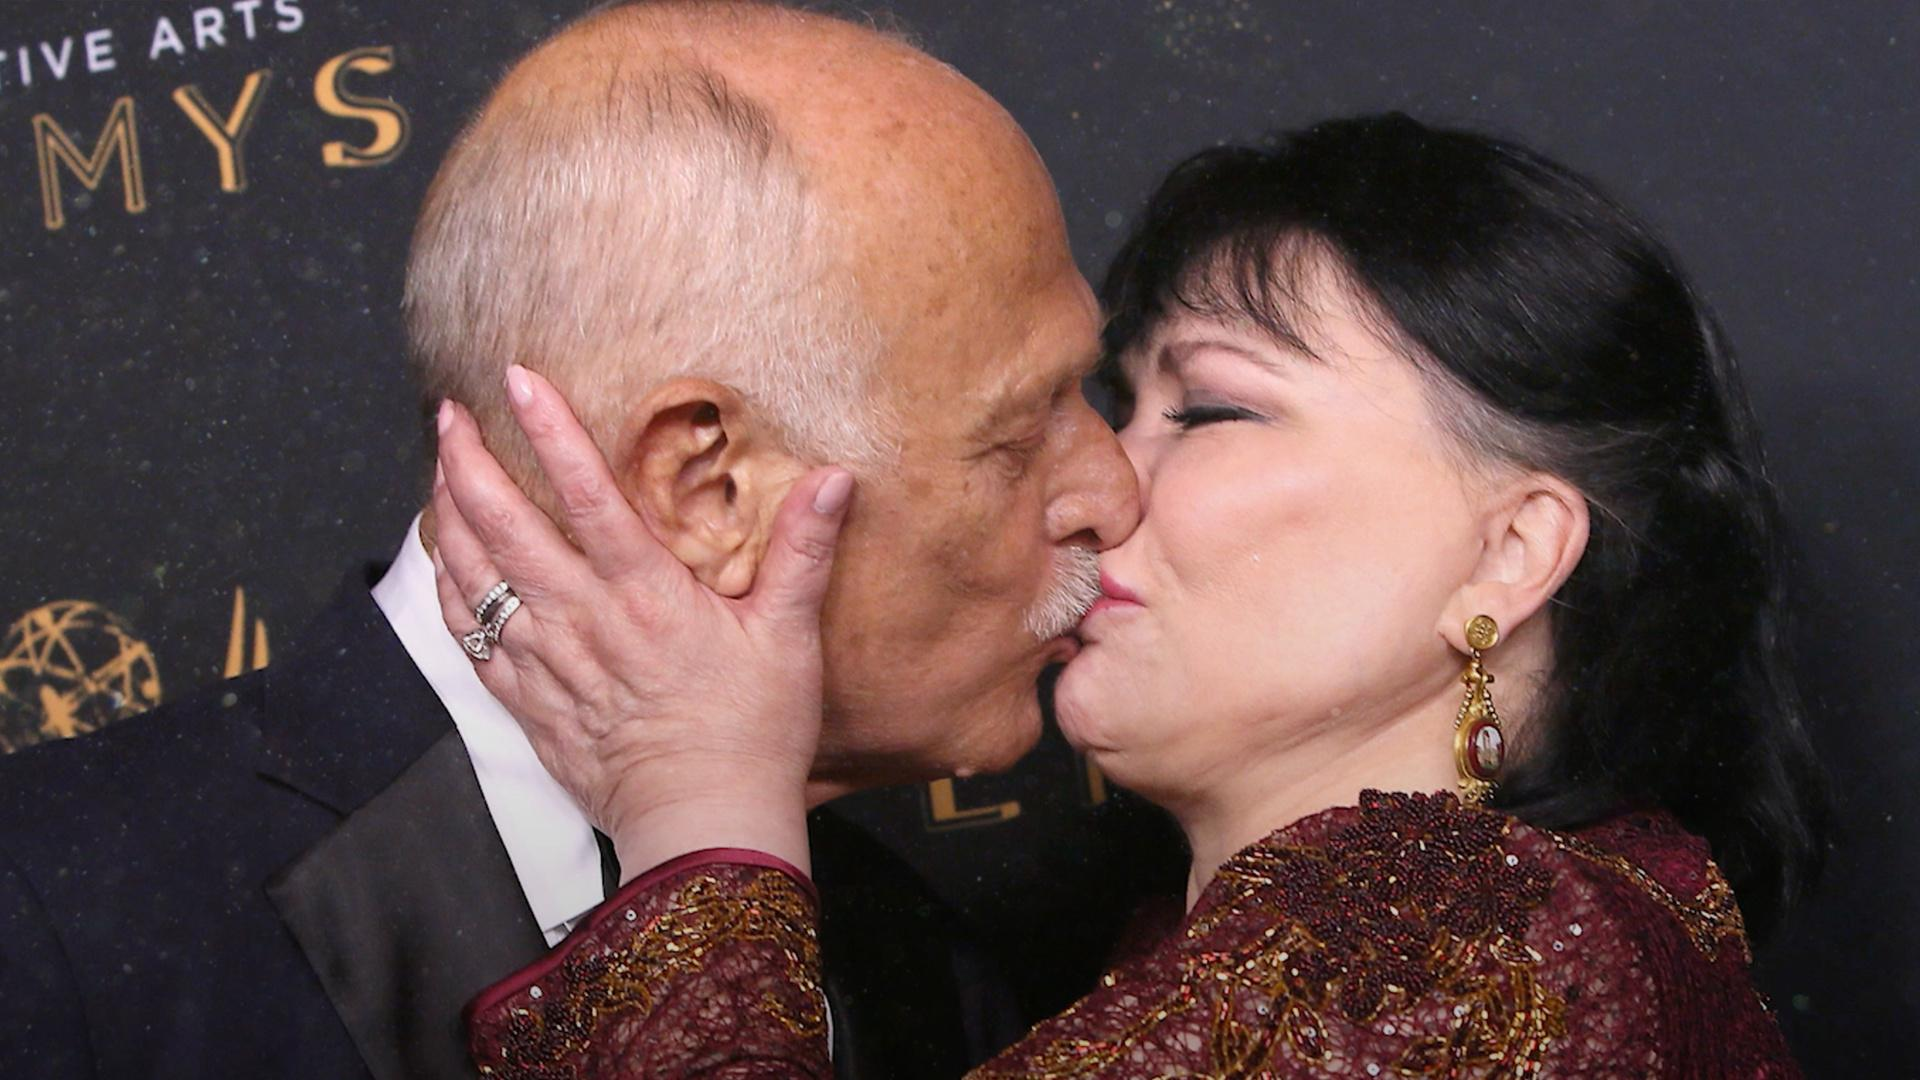 Delta Burke and Gerald McRaney's Supportive Marriage Has Stood the Test of Time